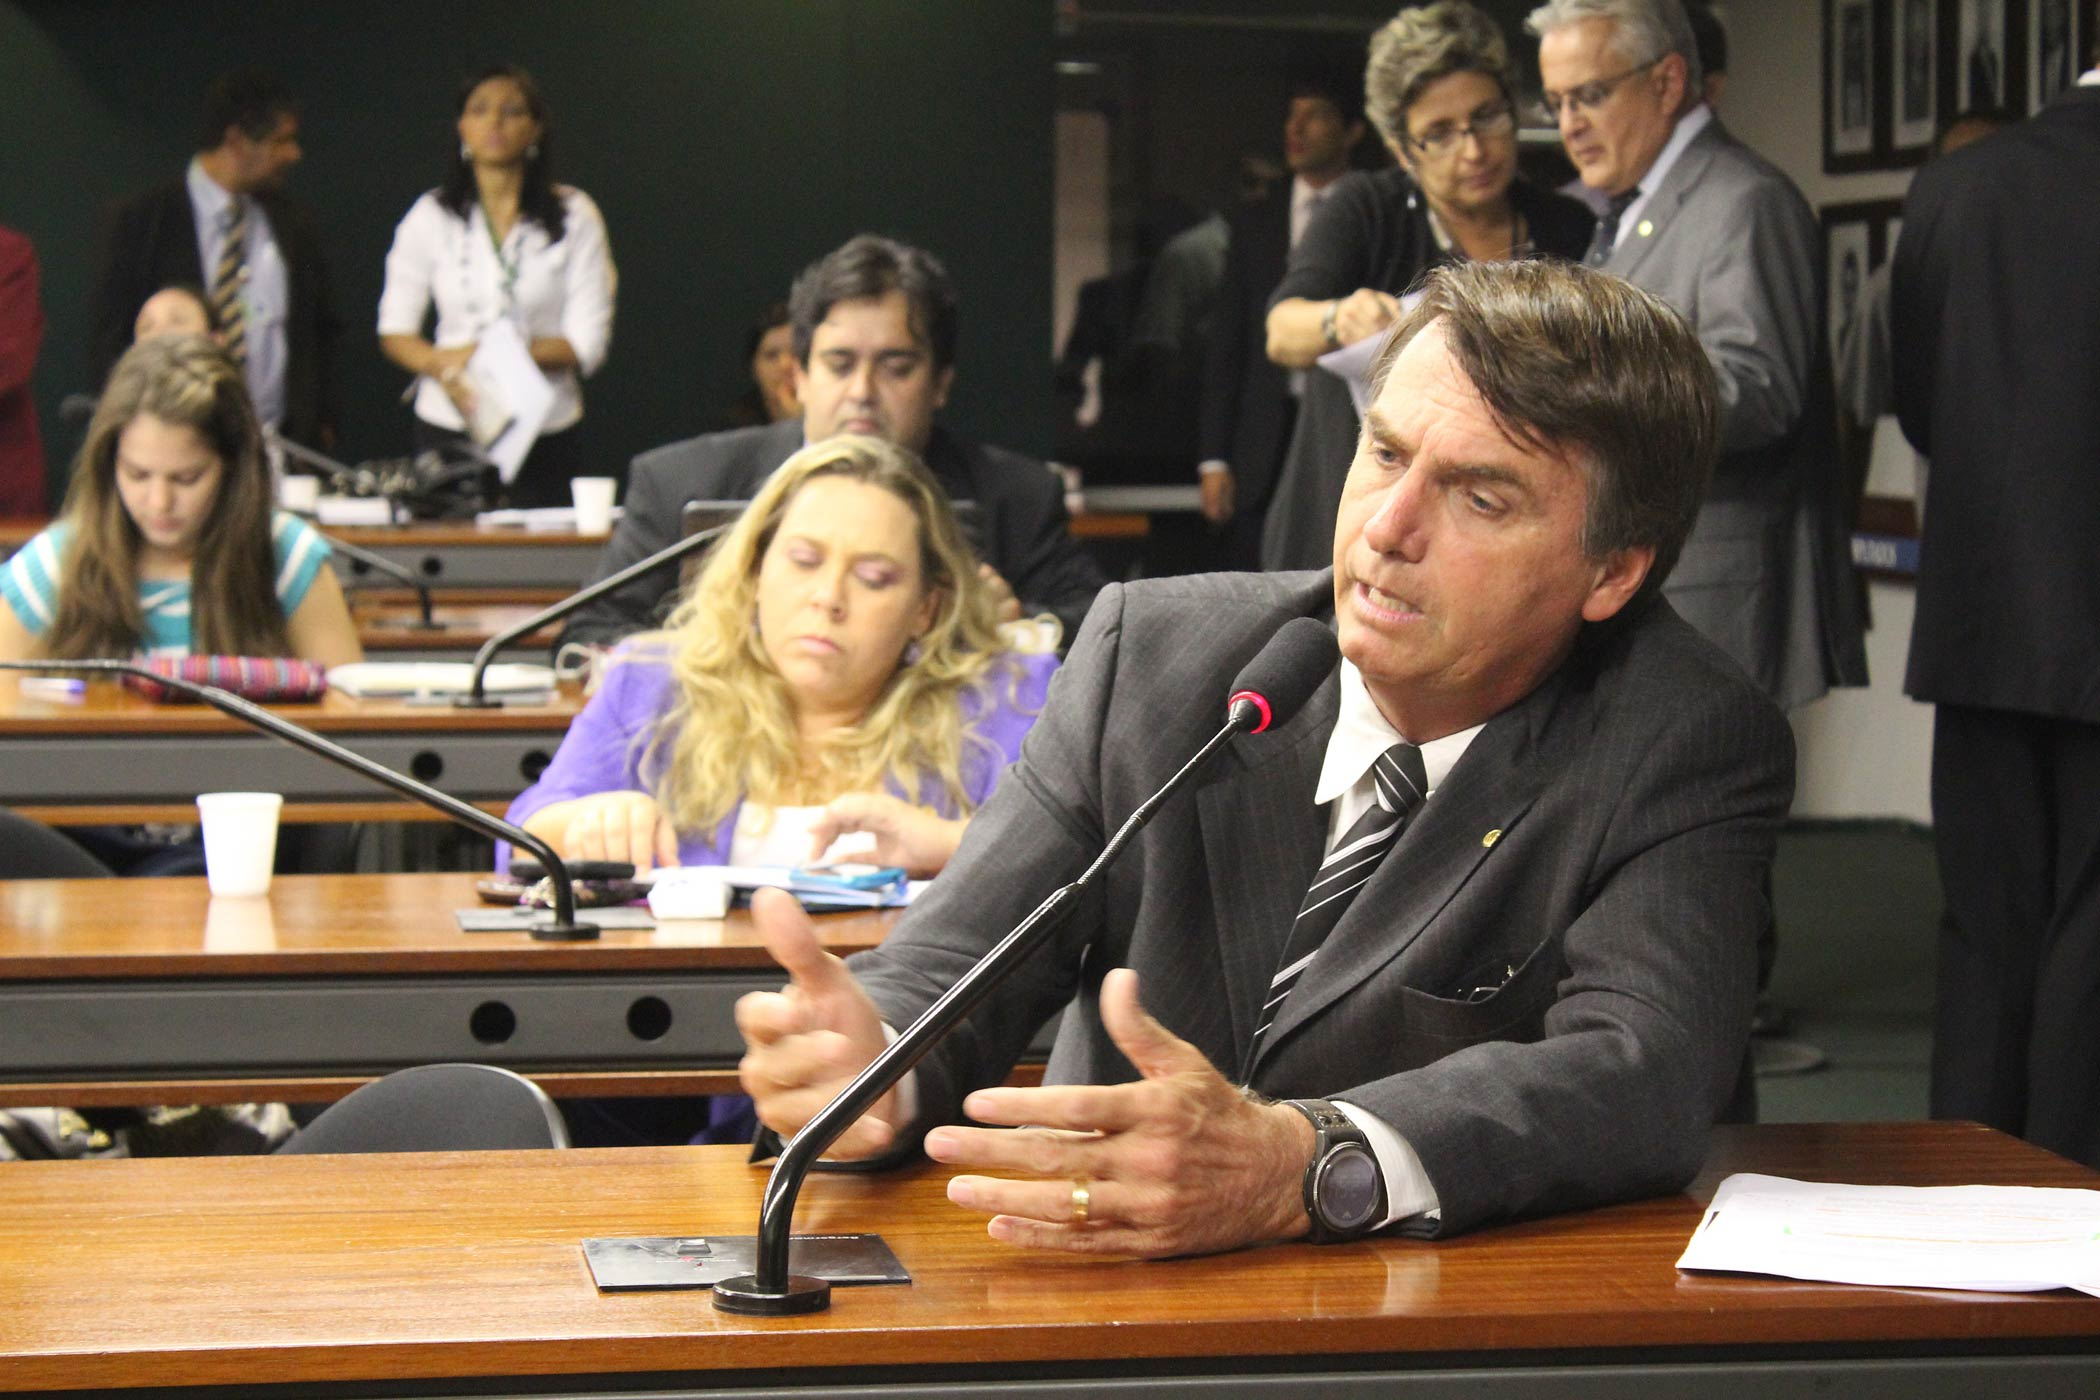 Brazilian Congressman Jair Bolsonaro seen in 2011